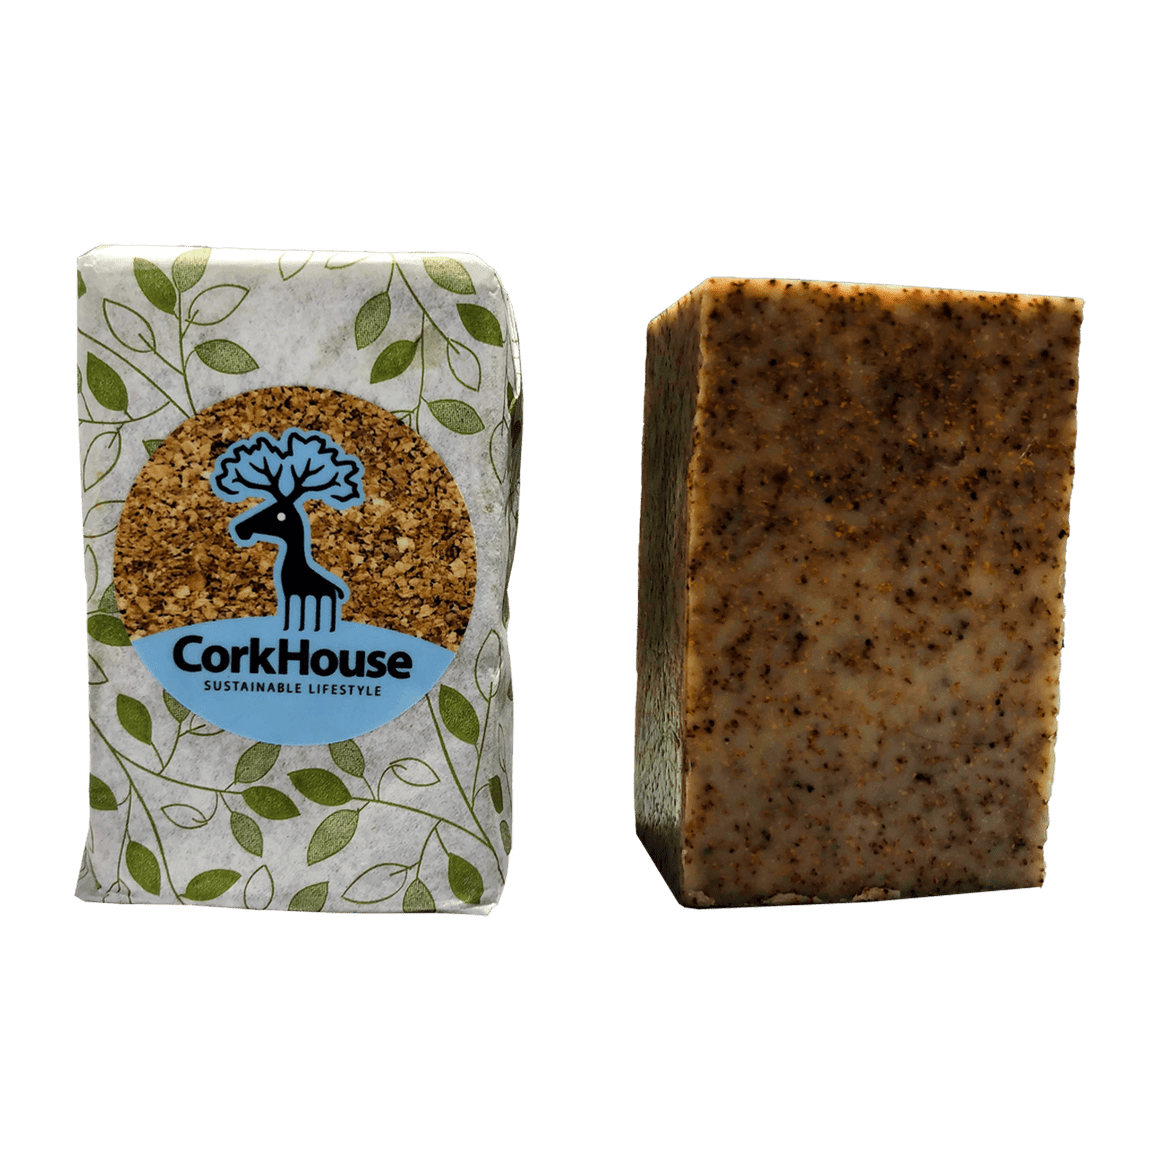 CorkHouse CorkHouse Bar Soap - Cedarwood & Lavender